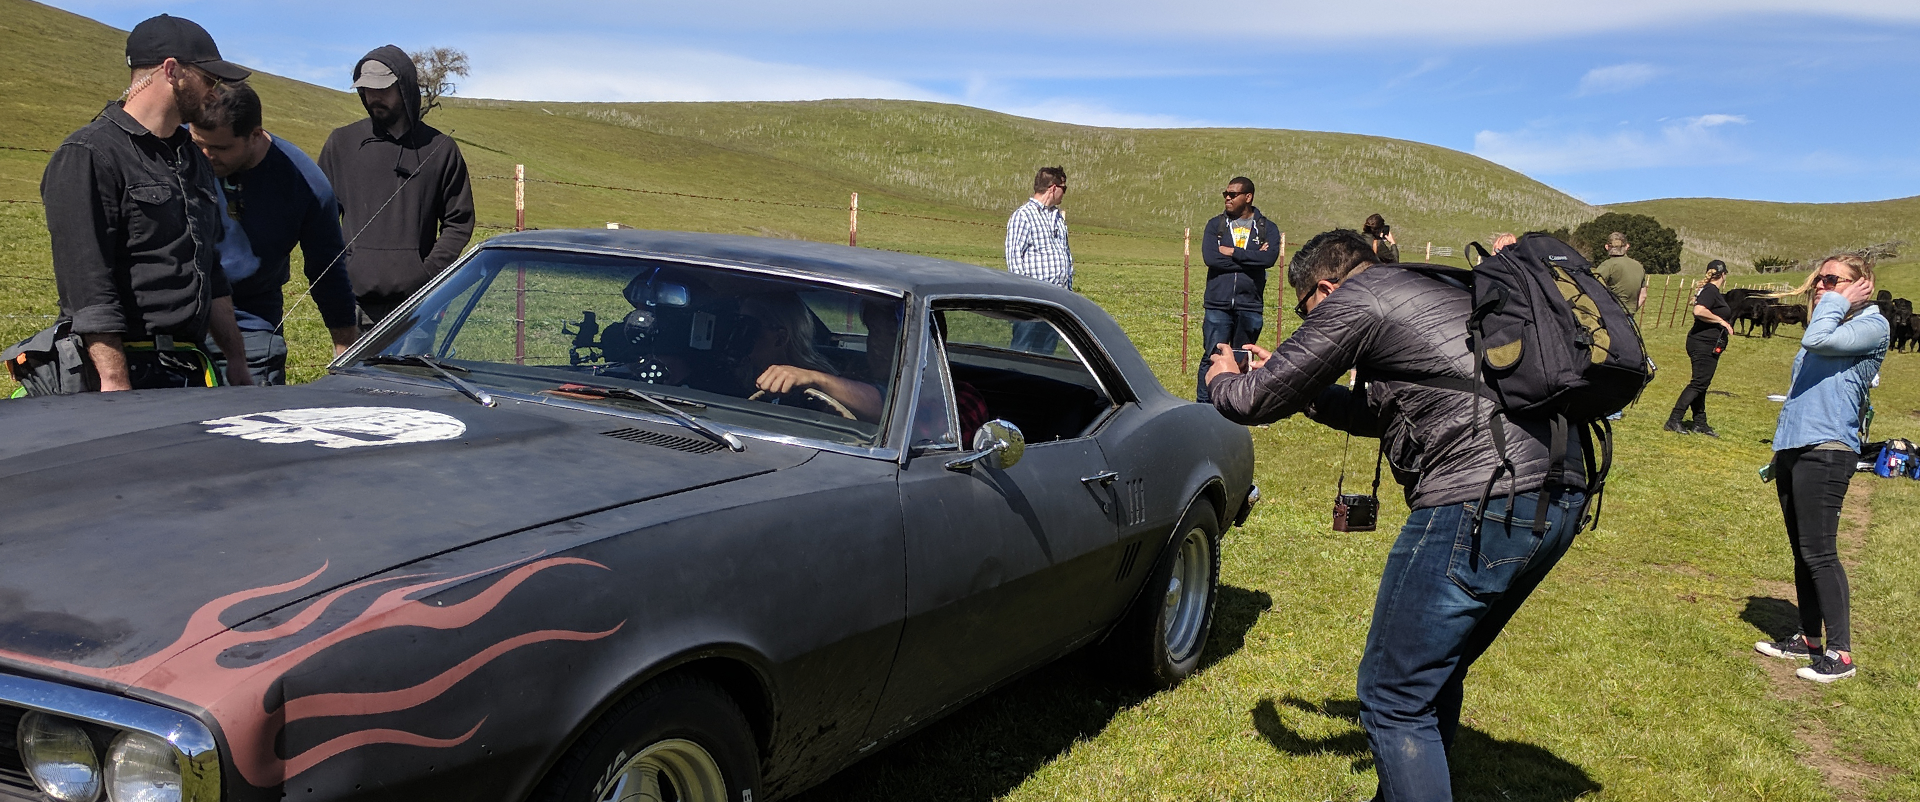 FarCry5_BTS_019_1920x802.png